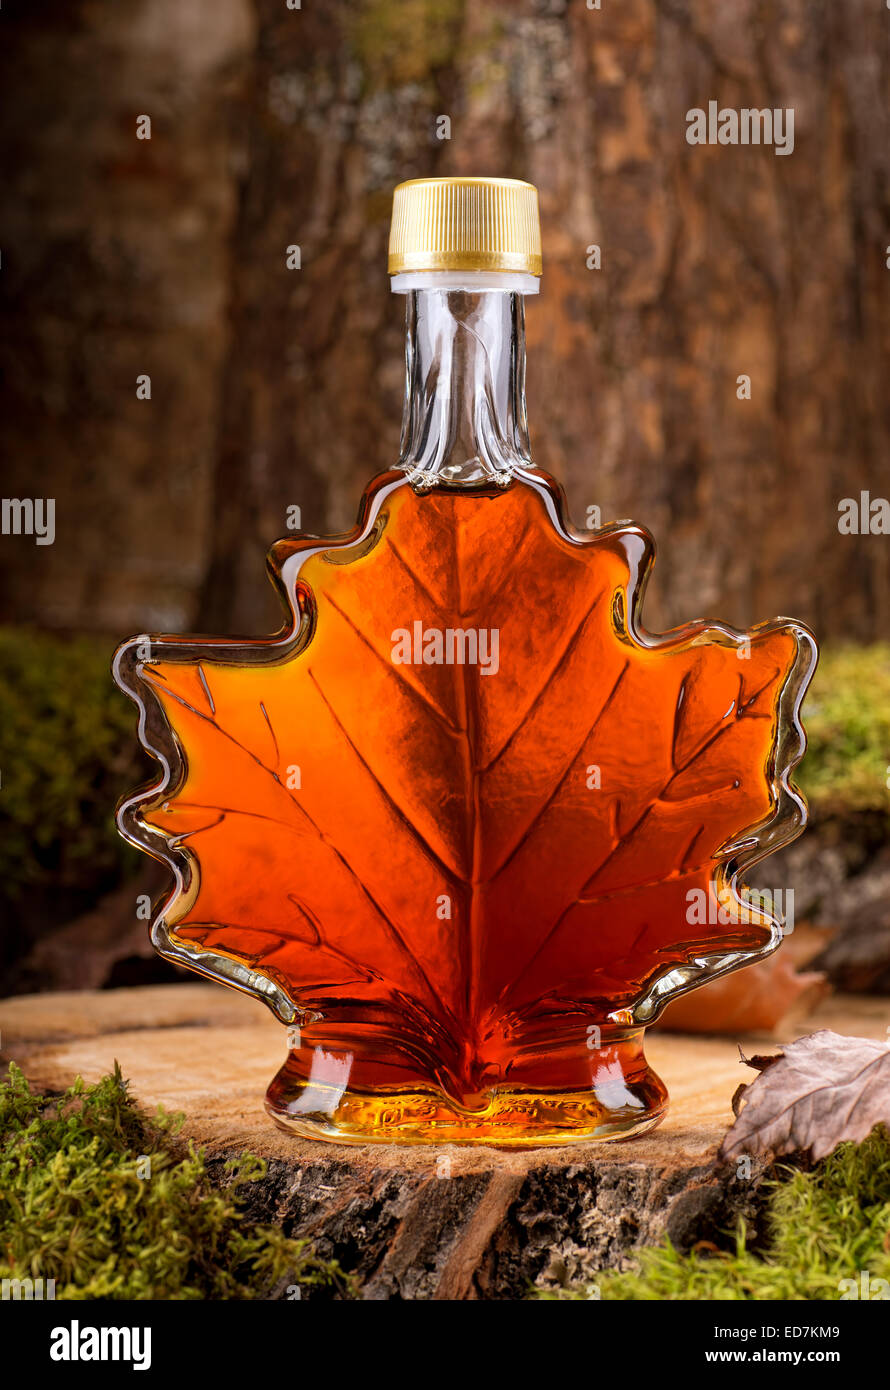 A bottle of delicious maple syrup in hardwood forest setting. - Stock Image